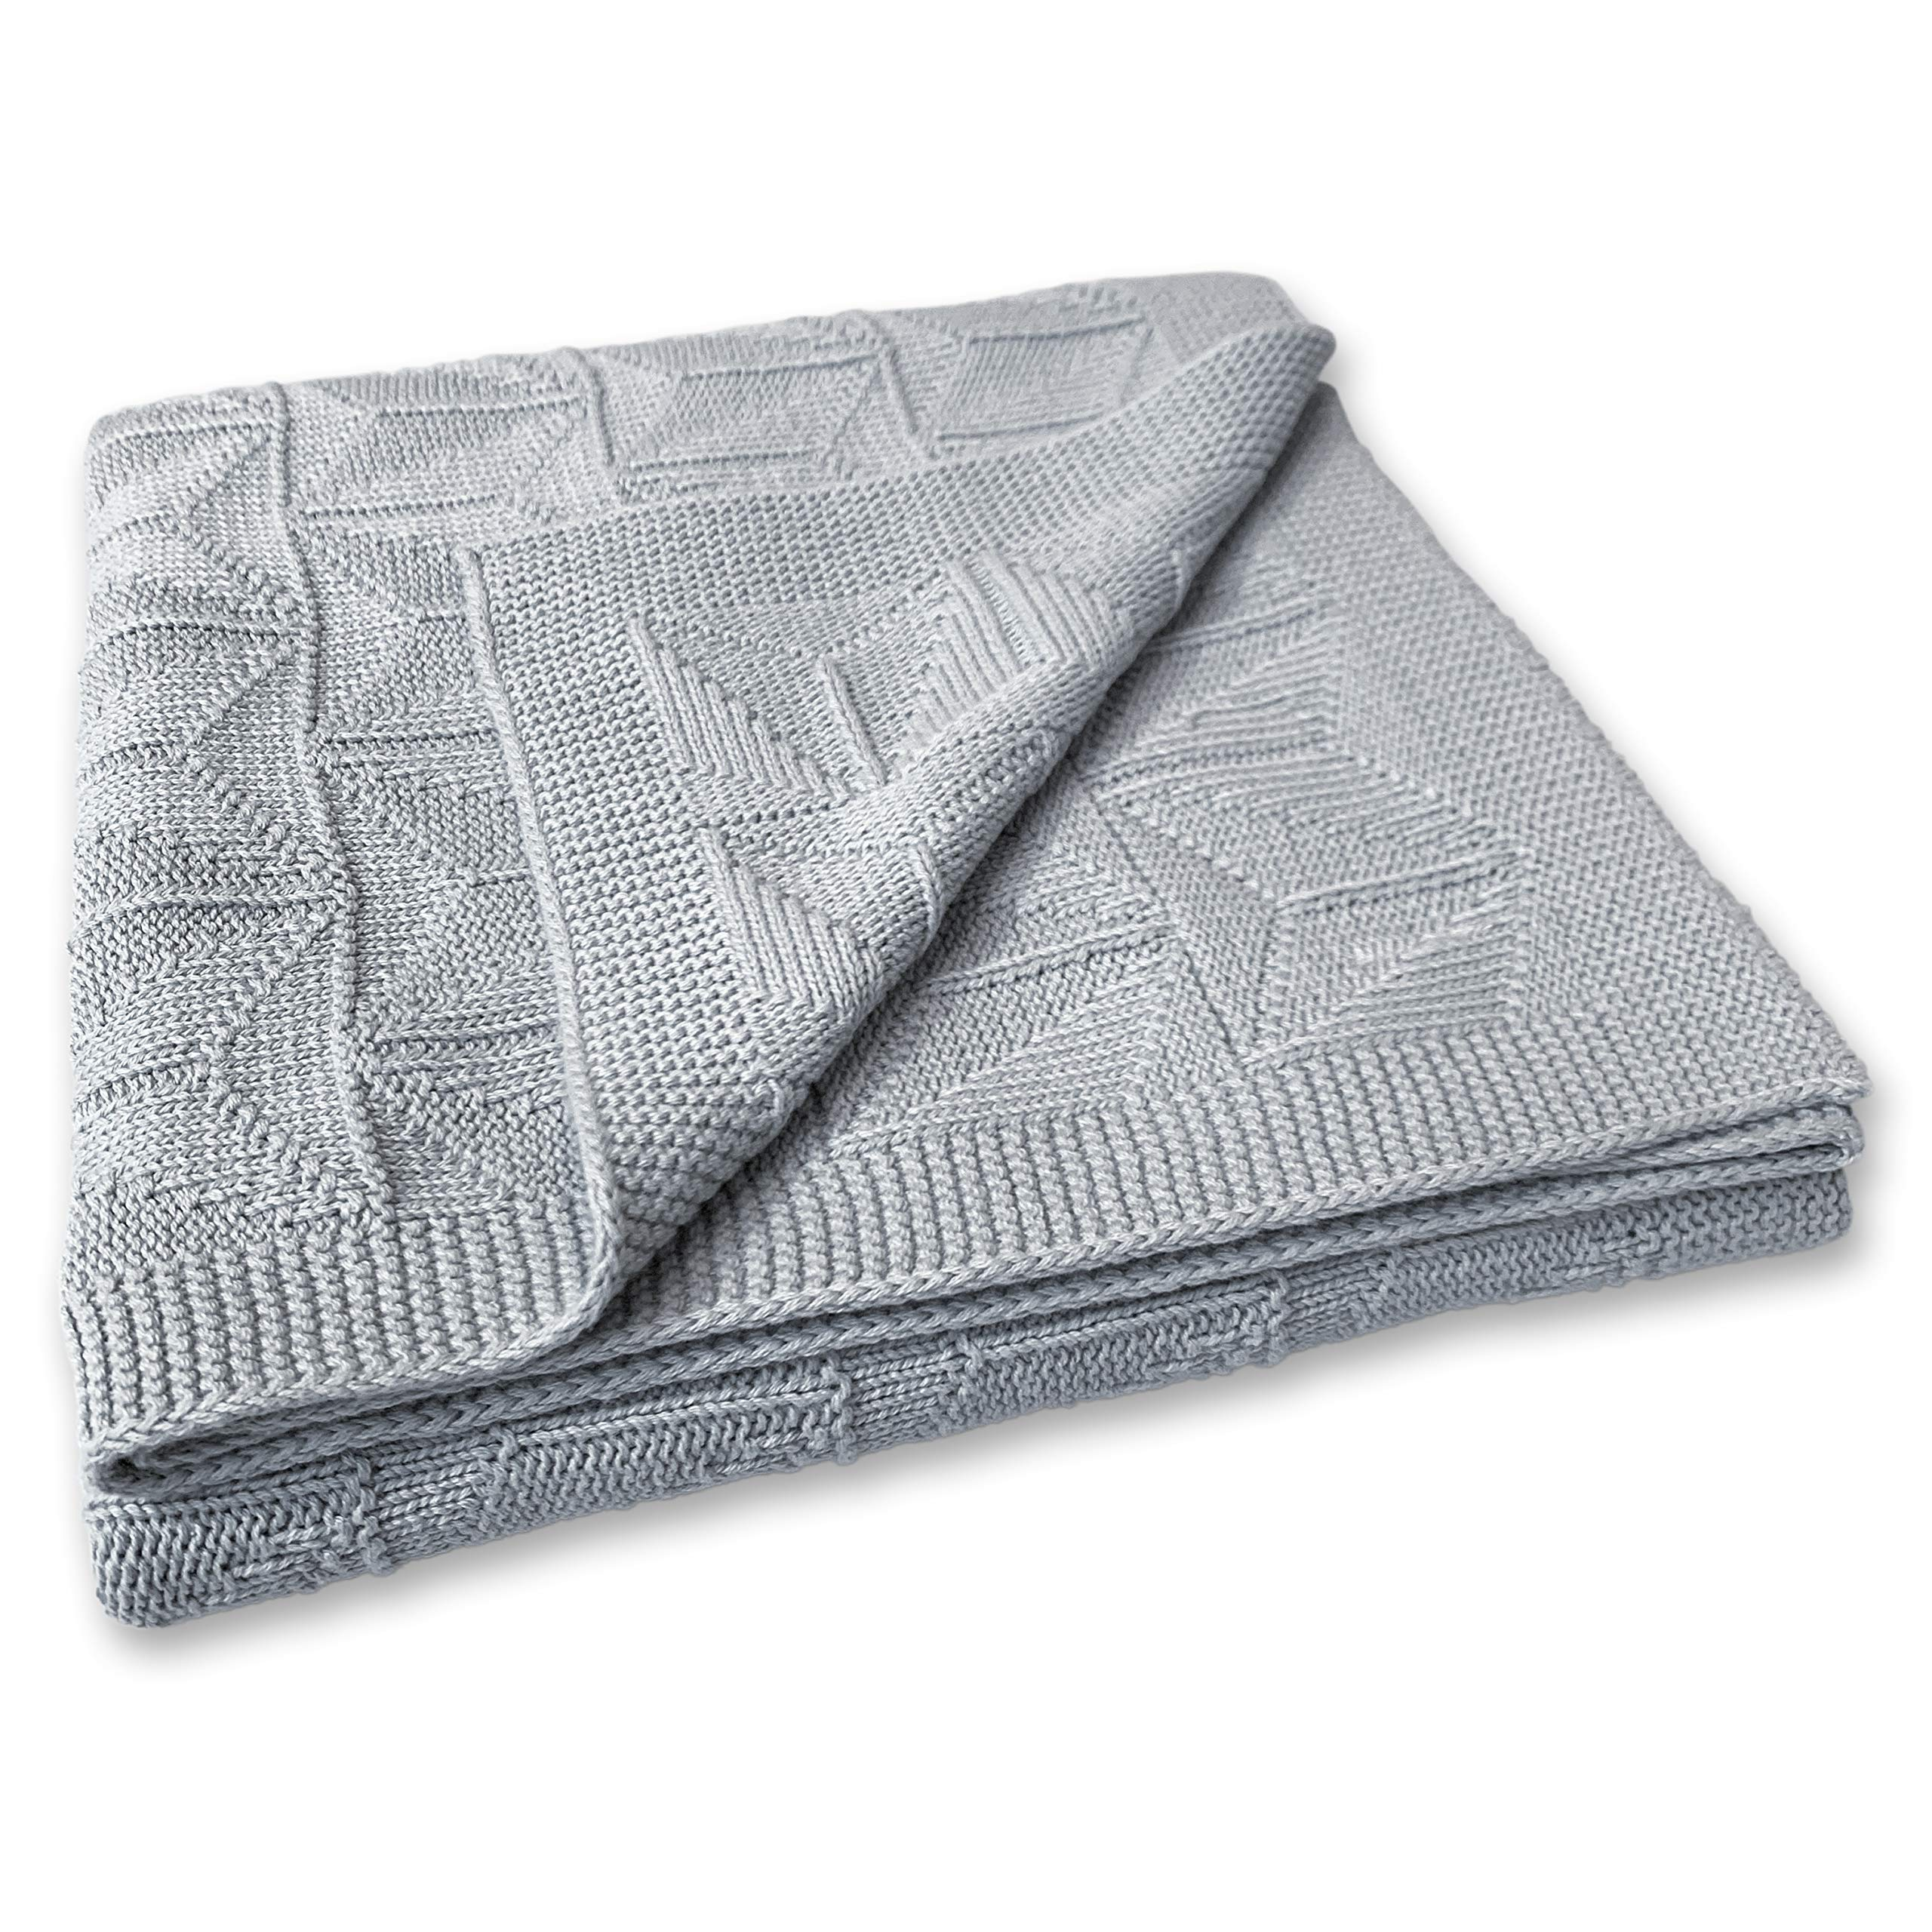 Zeke and Zoey Soft 100% Cotton Knit Grey Baby Blanket for Girls or Boys - Unisex, for Infant, Newborn, Toddler and Kids for Crib, Stroller, car, Receiving or Swaddle Blanket by Zeke and Zoey